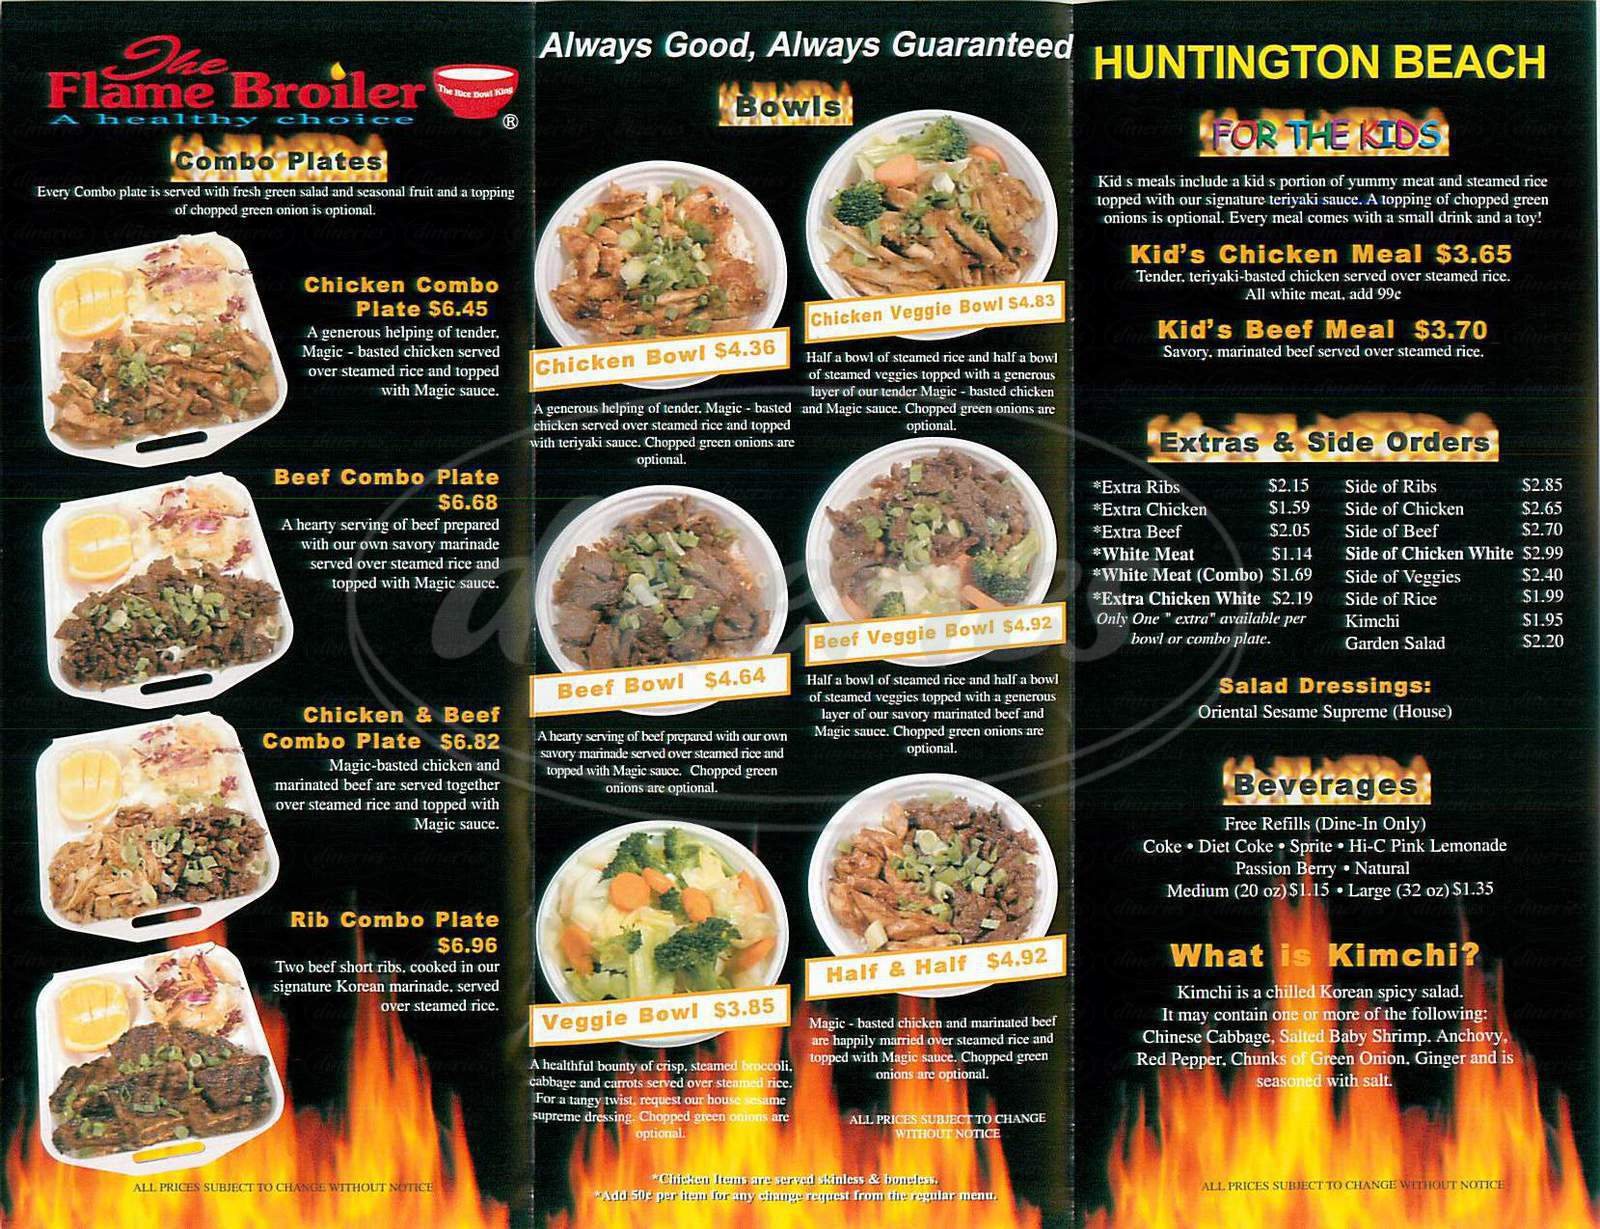 menu for The Flame Broiler